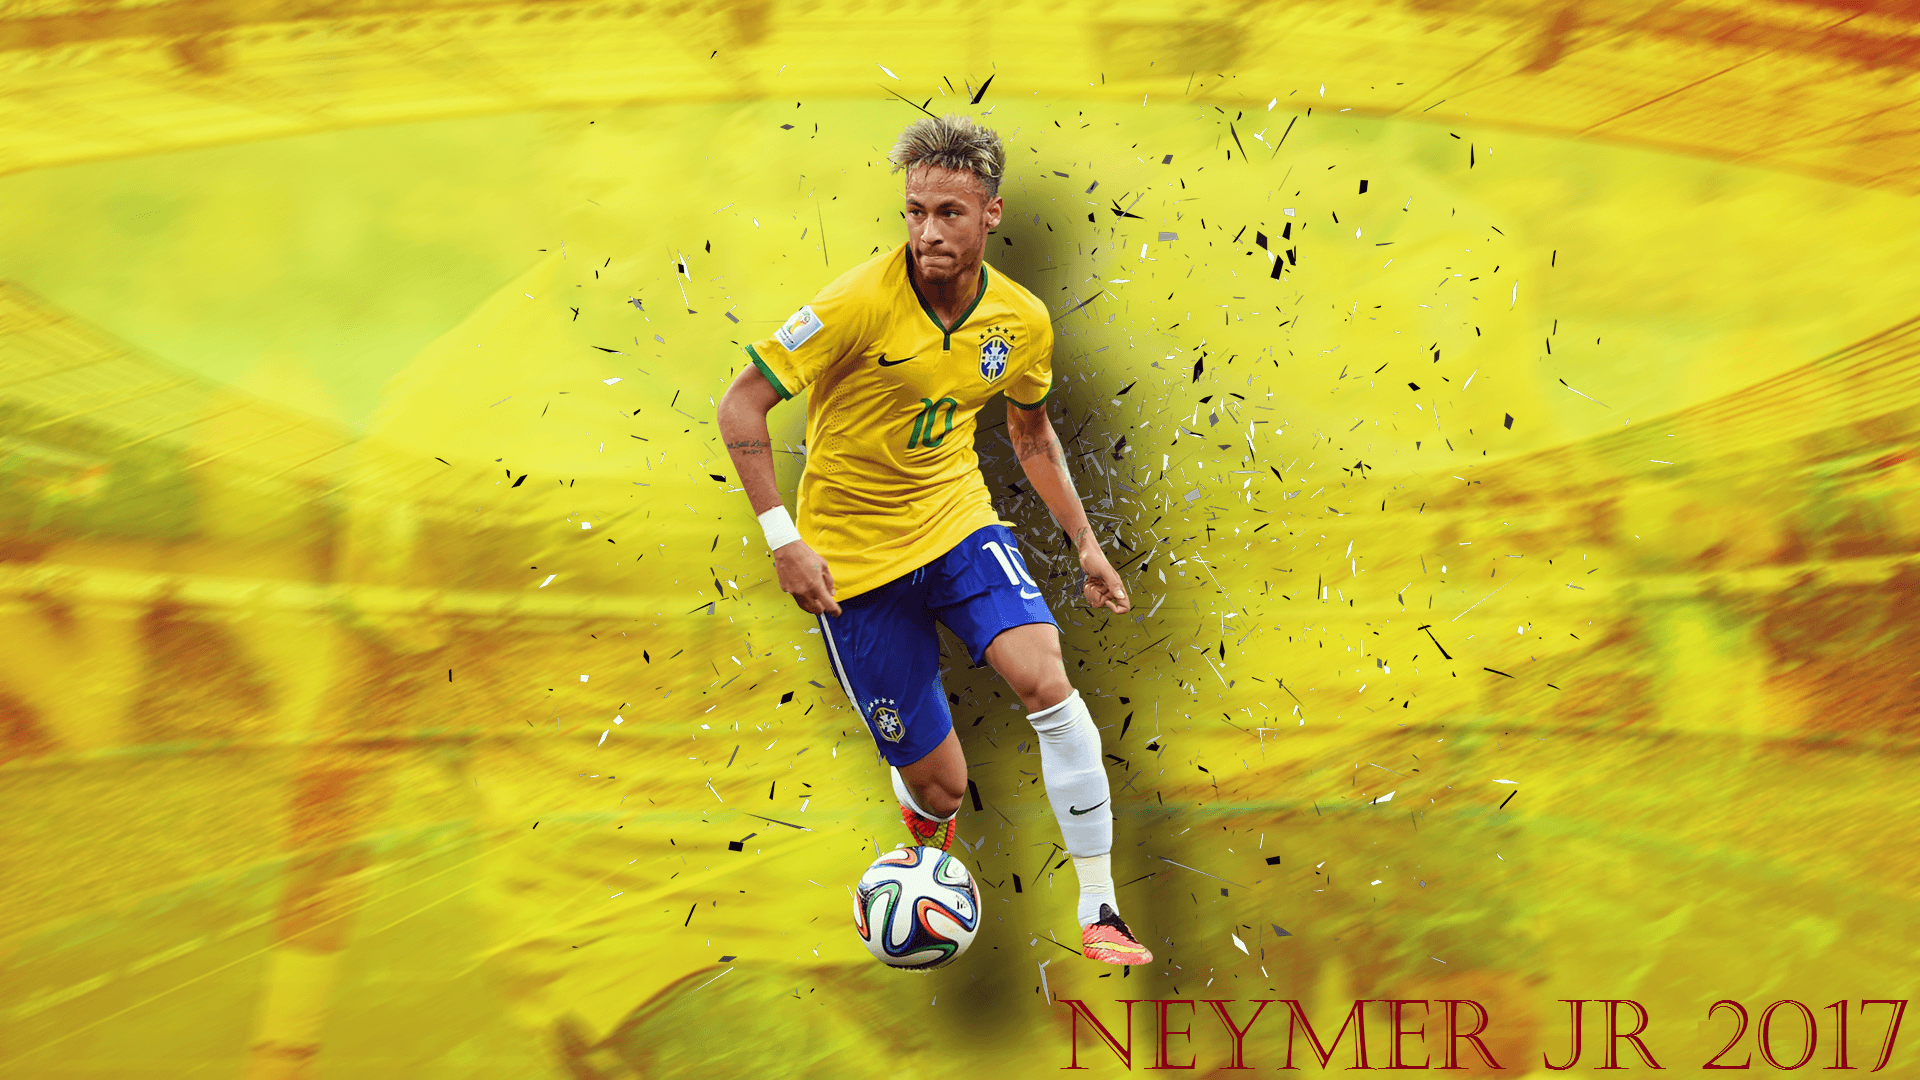 Neymar Wallpapers 2017- HD Photos Free Download